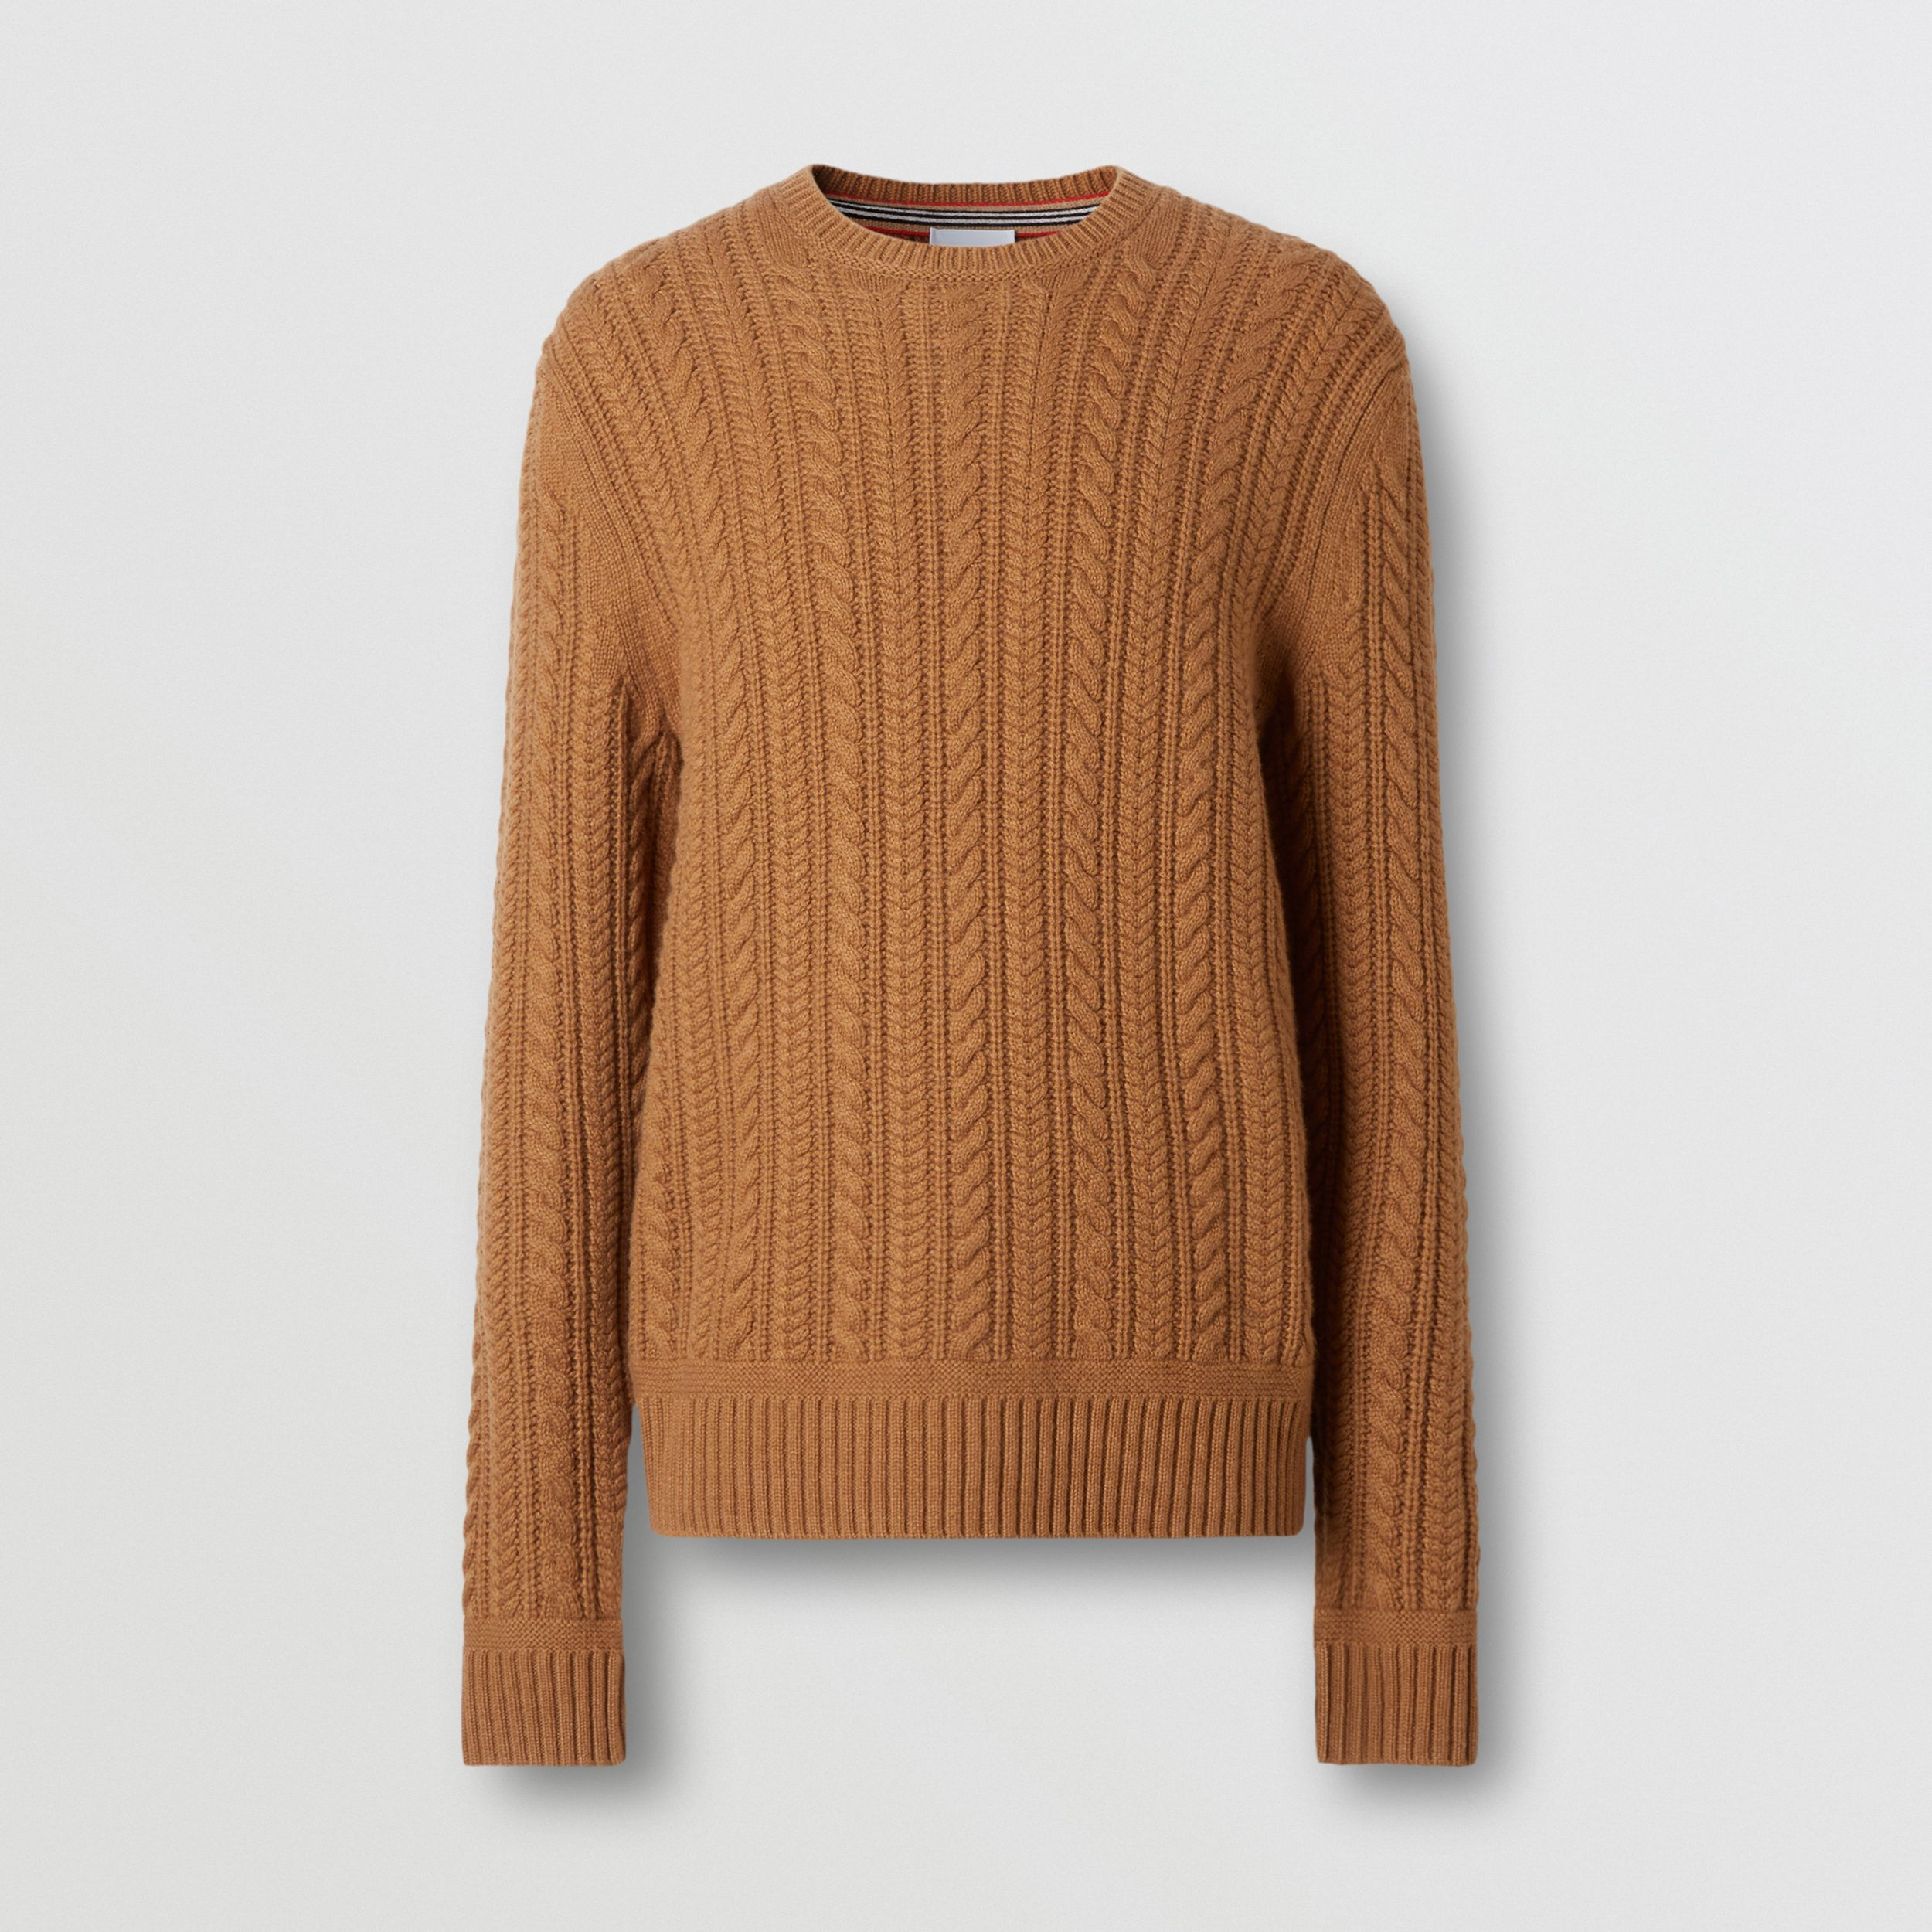 Cable Knit Cashmere Sweater in Maple - Men | Burberry Canada - 4